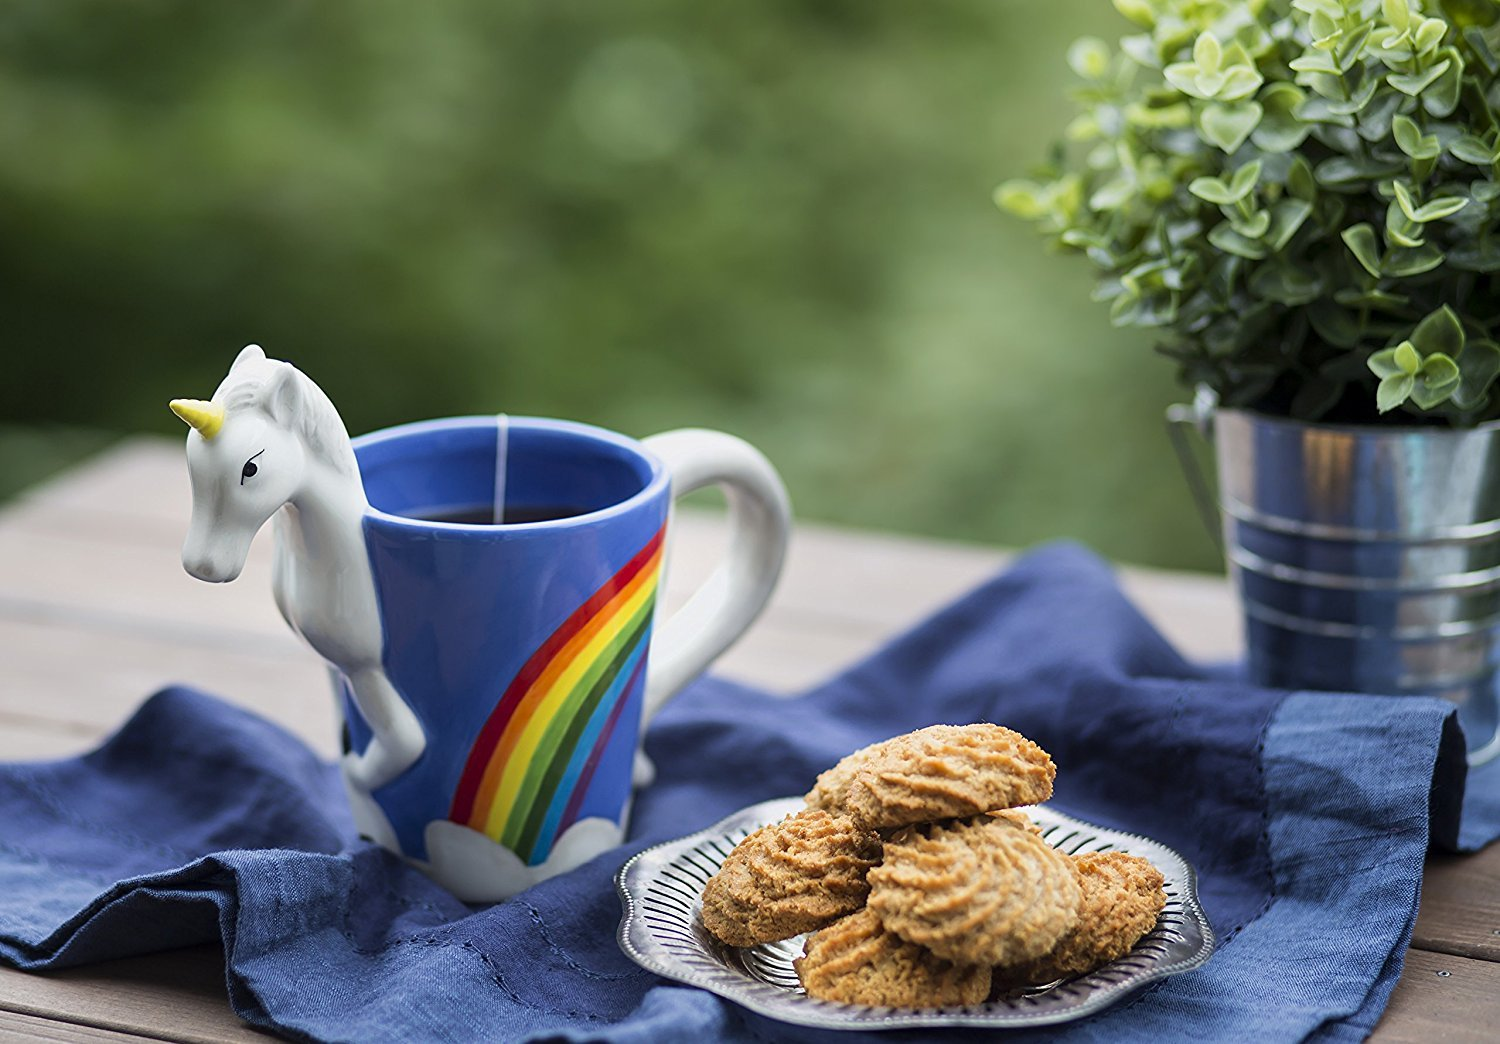 Ceramic Unicorn Coffee Mug w/Rainbow by Comfify - Sweet & Fantastical 3D Unicorn Design w/Magical Rainbow - Unique… 4